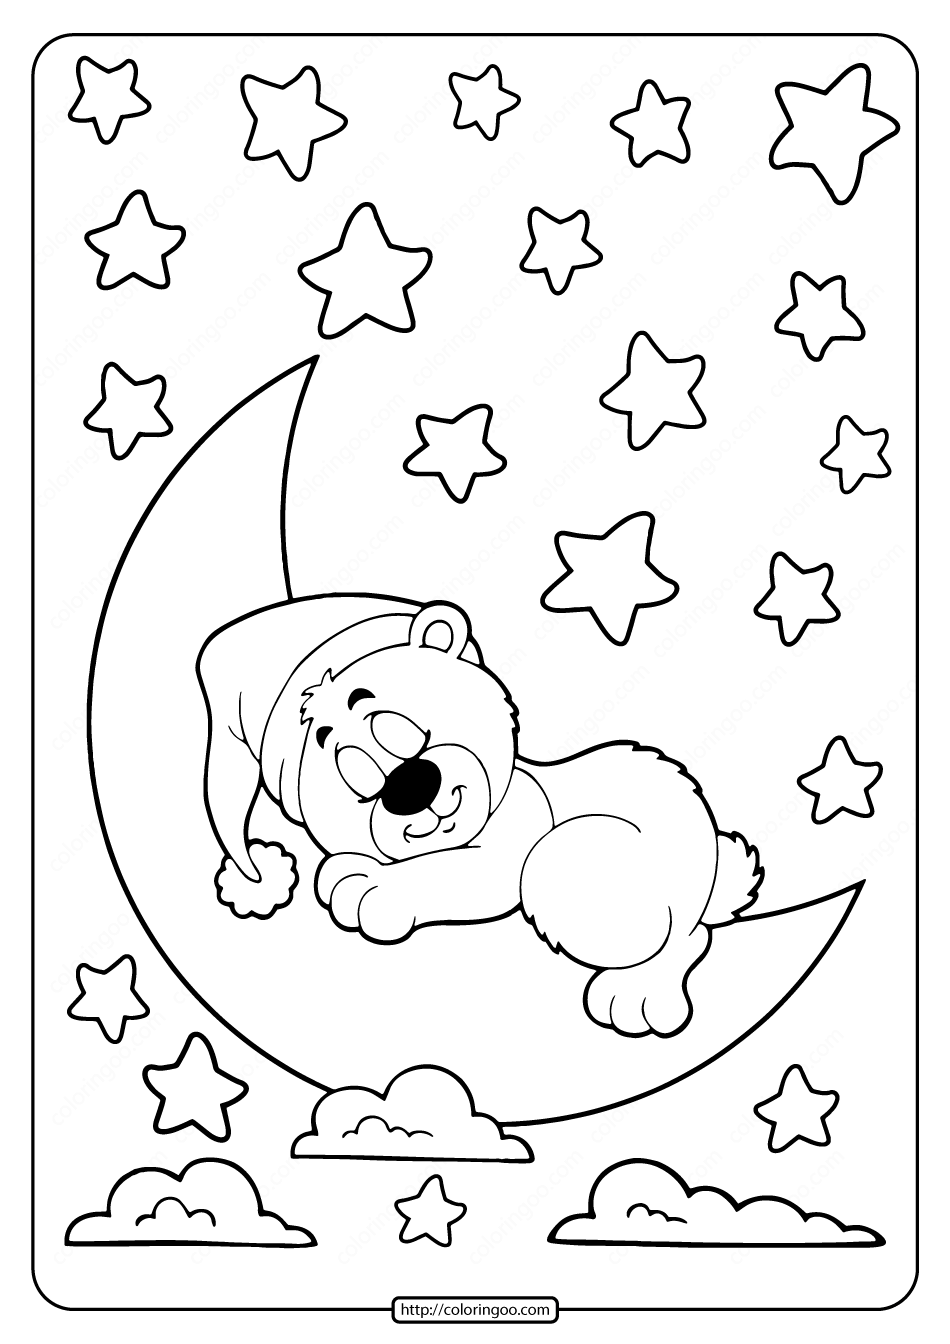 Sleeping Bear On The Moon Coloring Pages In 2021 Moon Coloring Pages Coloring Pages Hand Art Drawing